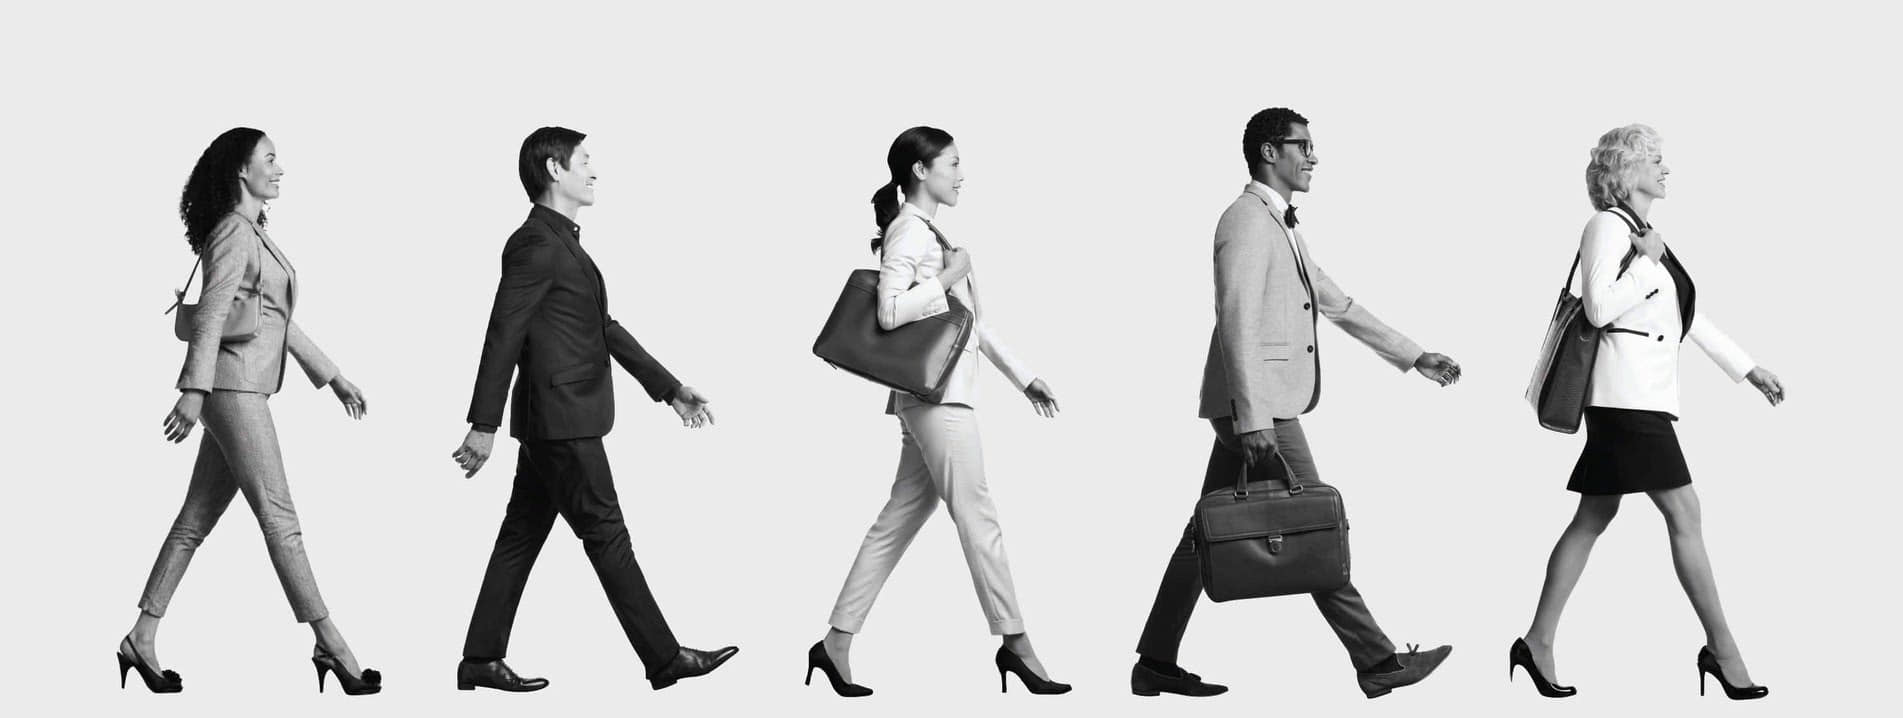 Job Applicants walking the towards their career goal.